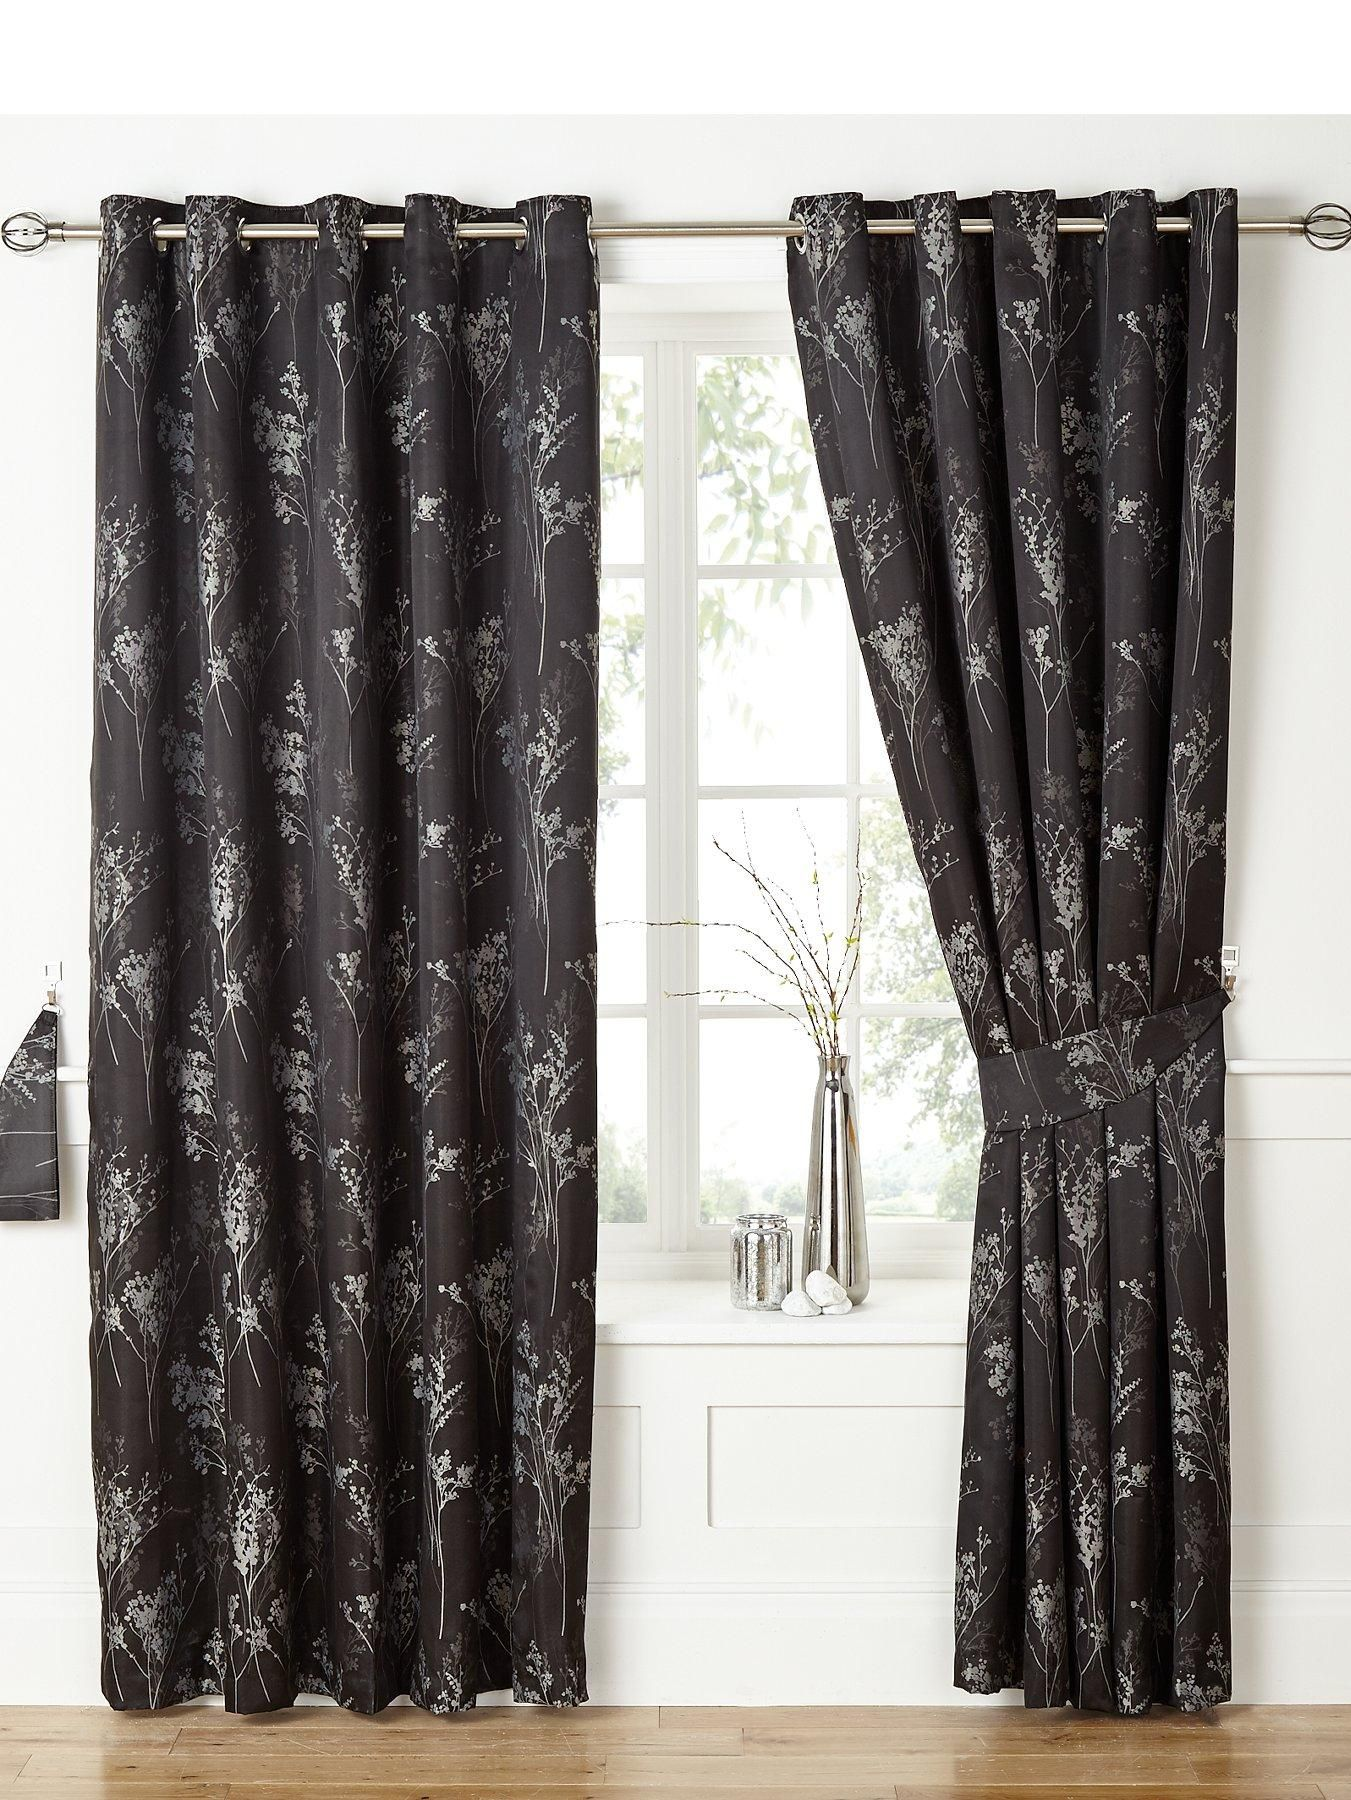 Windsor teal eyelet curtains harry corry limited - Tokyo Jacquard Thermal Blackout Eyelet Curtains